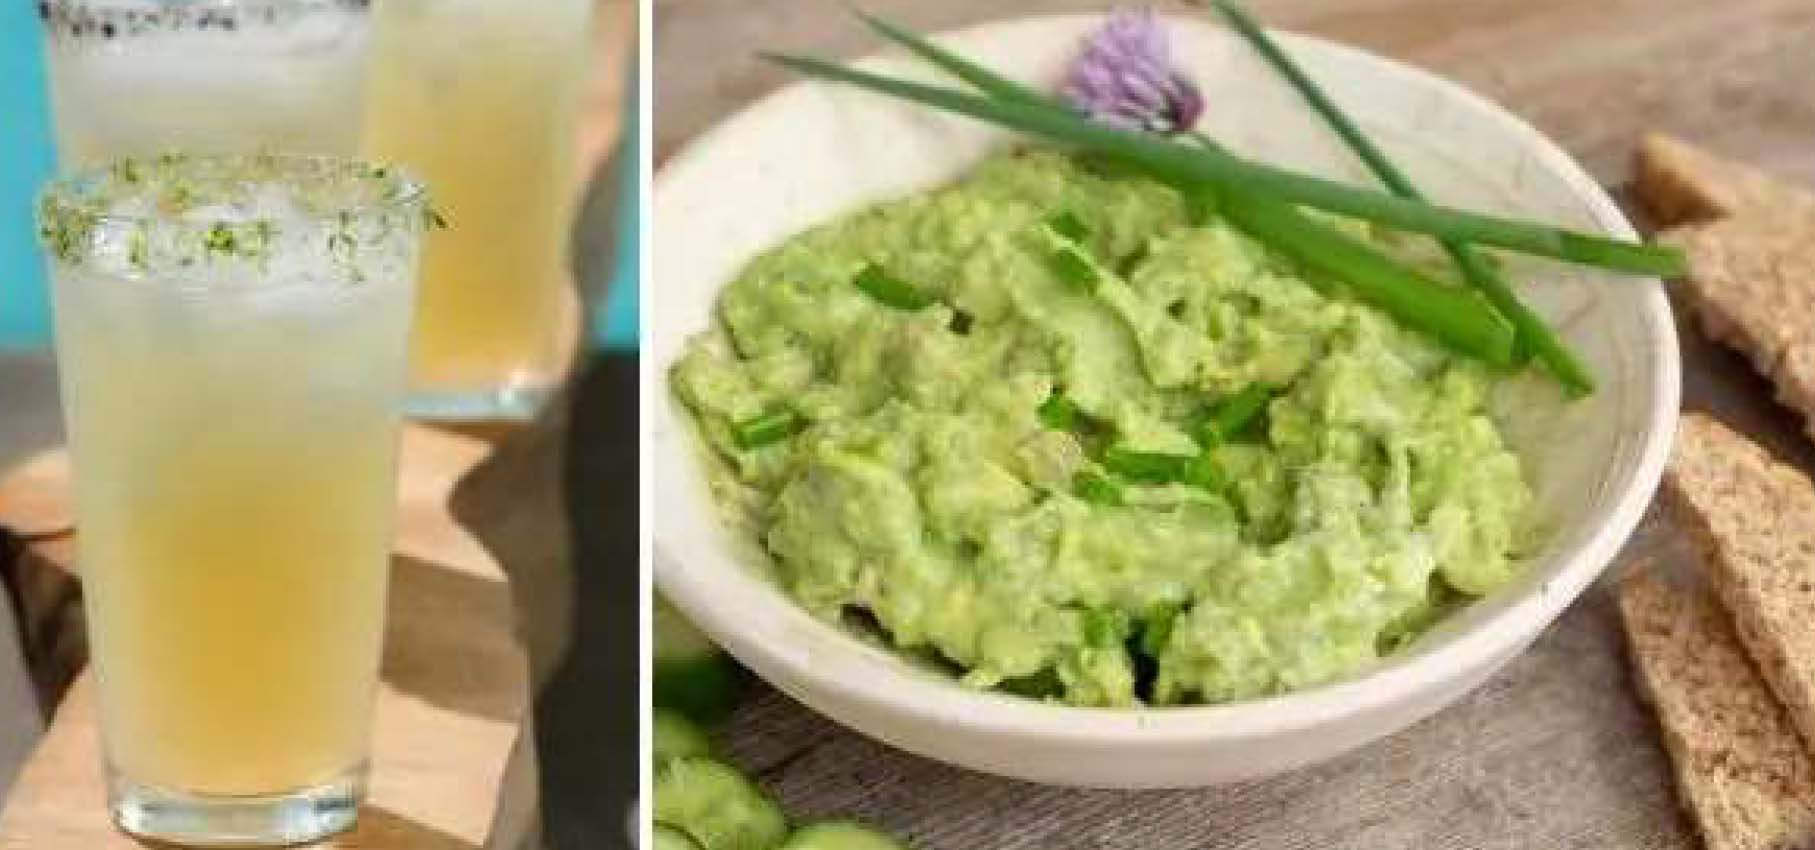 Lime margaritas with a side of guacamole.